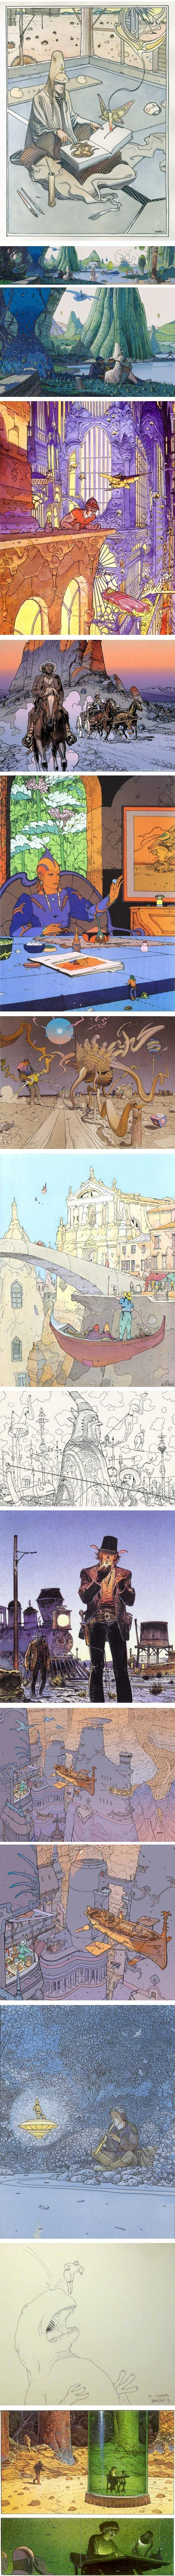 Jean Giraud (Moebius) 1938-2012 - I know I've already pinned a few about Moebius, but both the text and the acompanying set of images are too good to be missed.